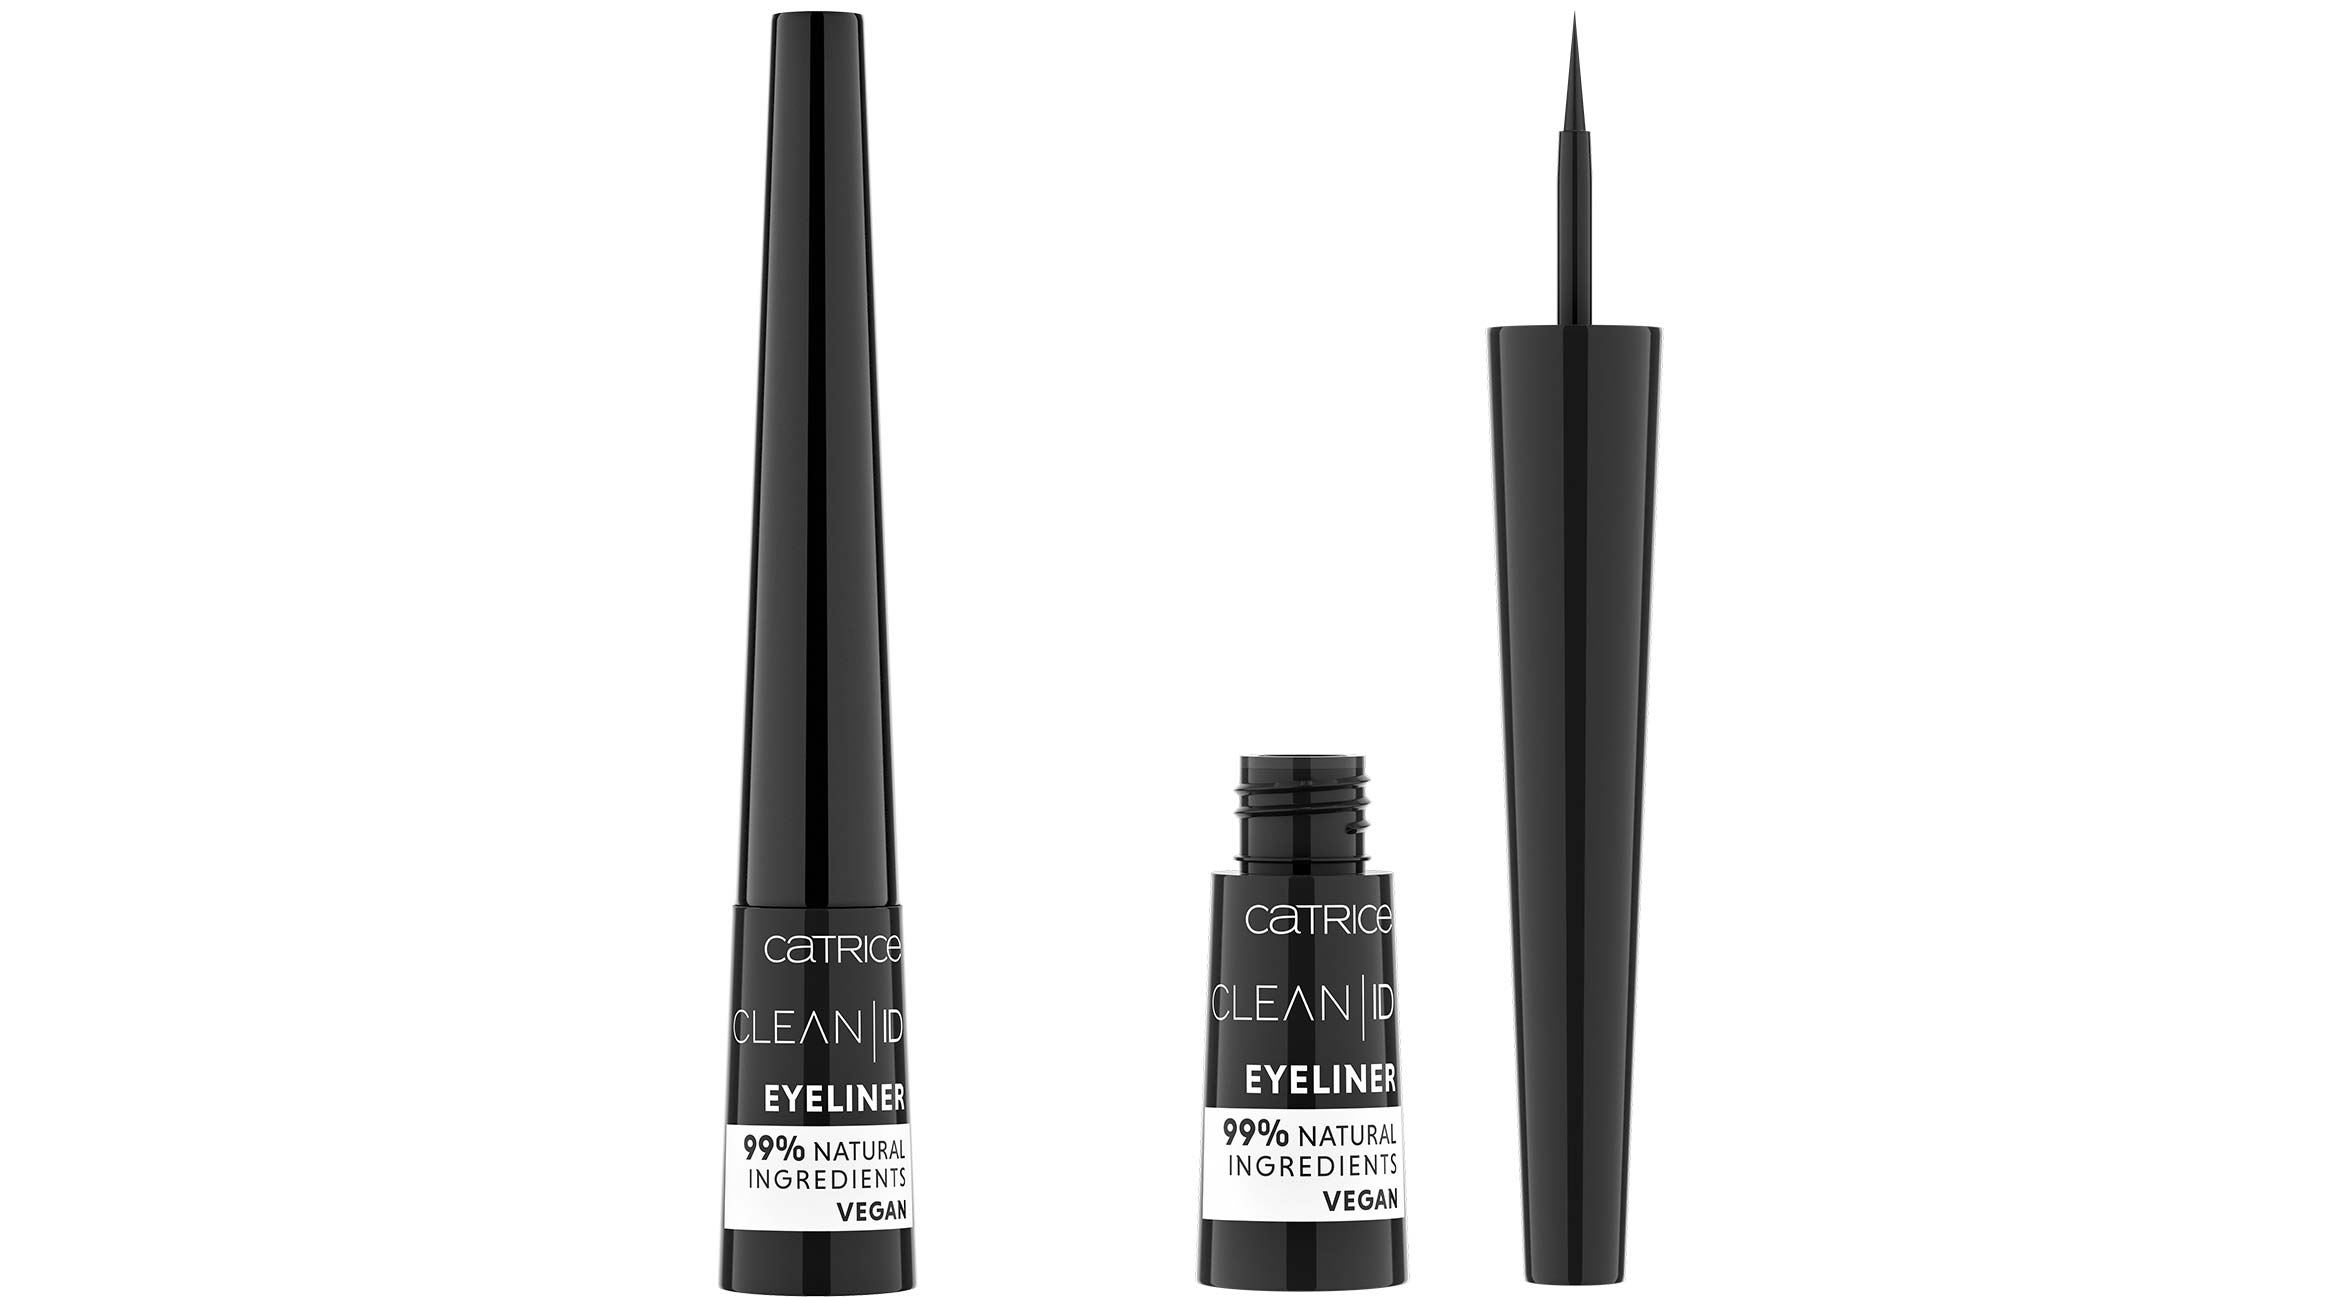 catrice-clean-id-eyeliner